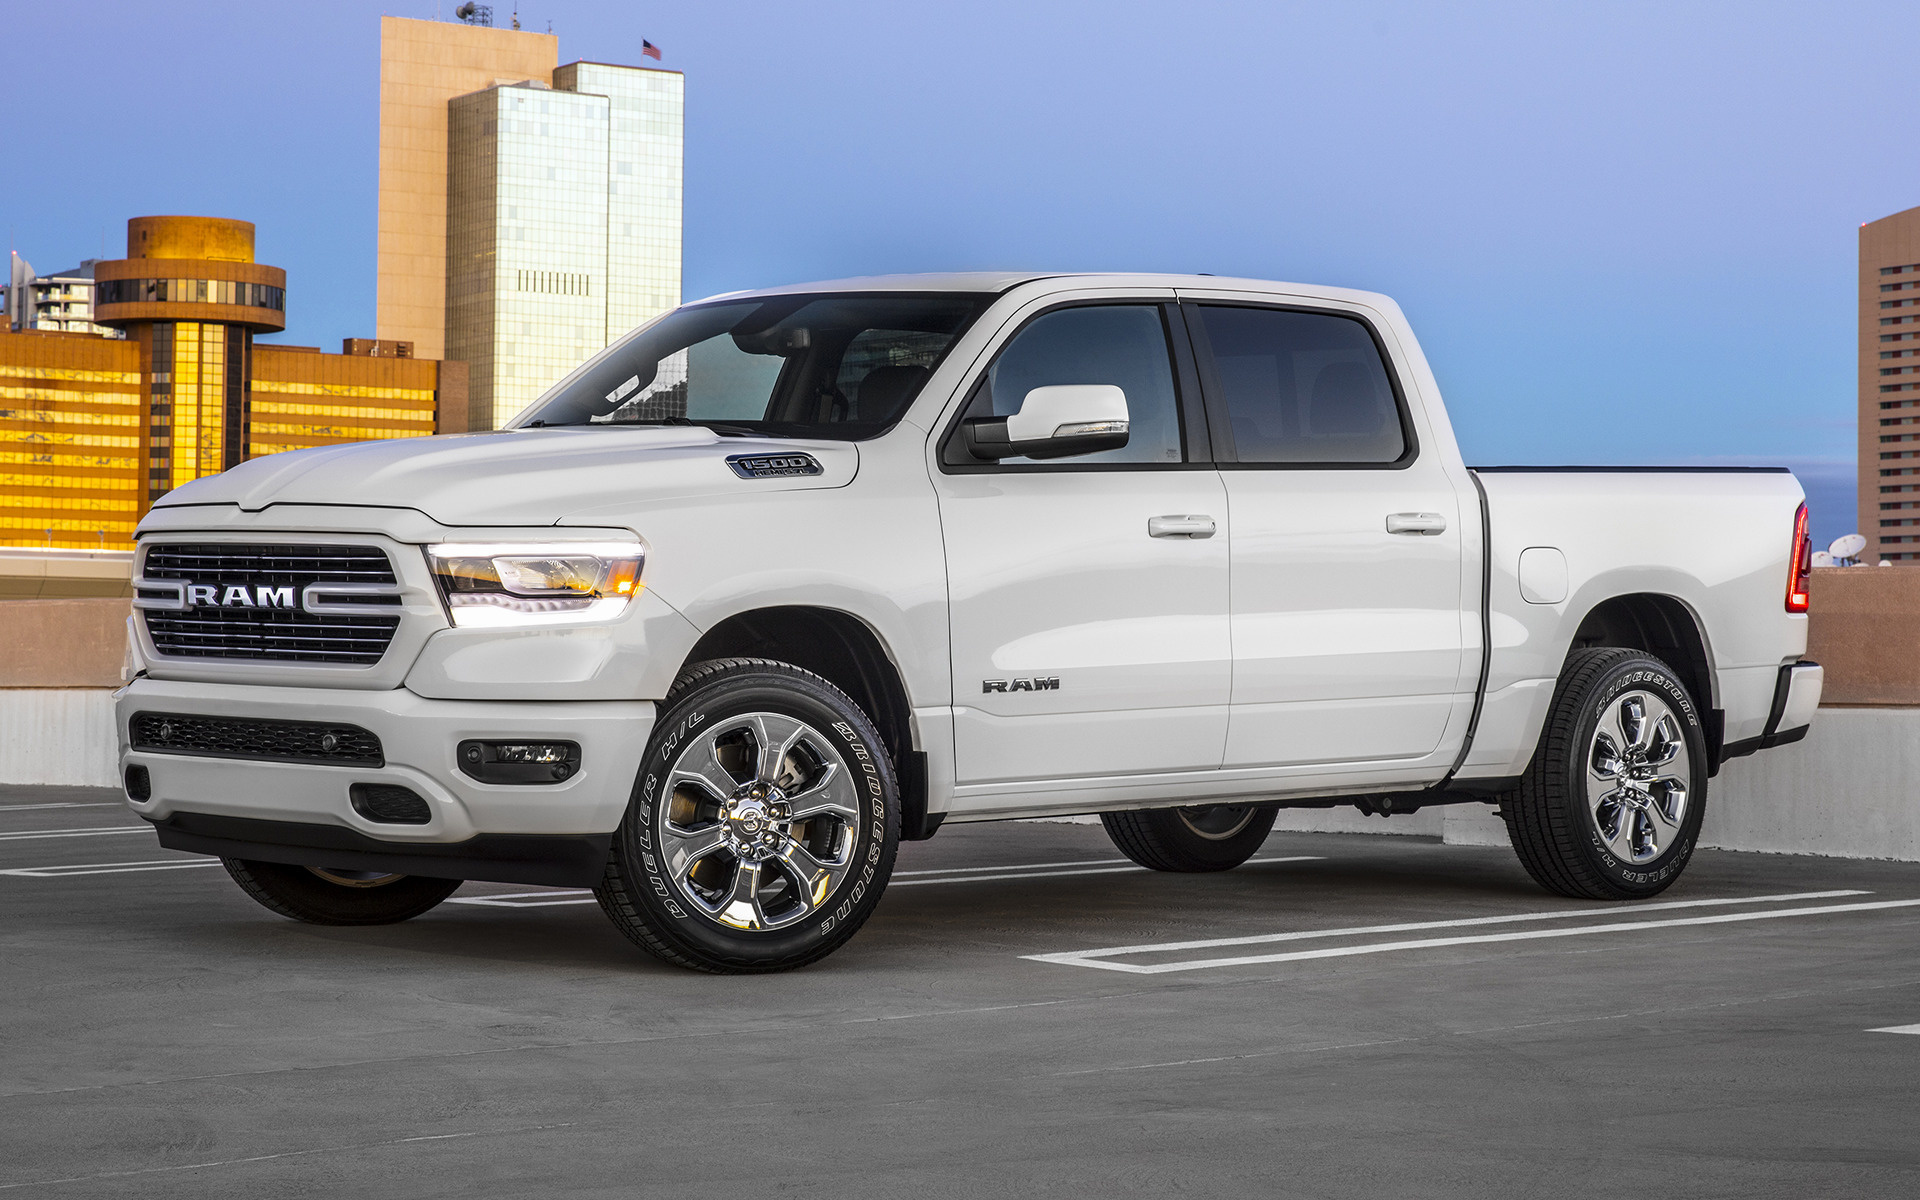 Ram Big Horn Crew Cab Sport Appearance Package Short Car Wallpaper